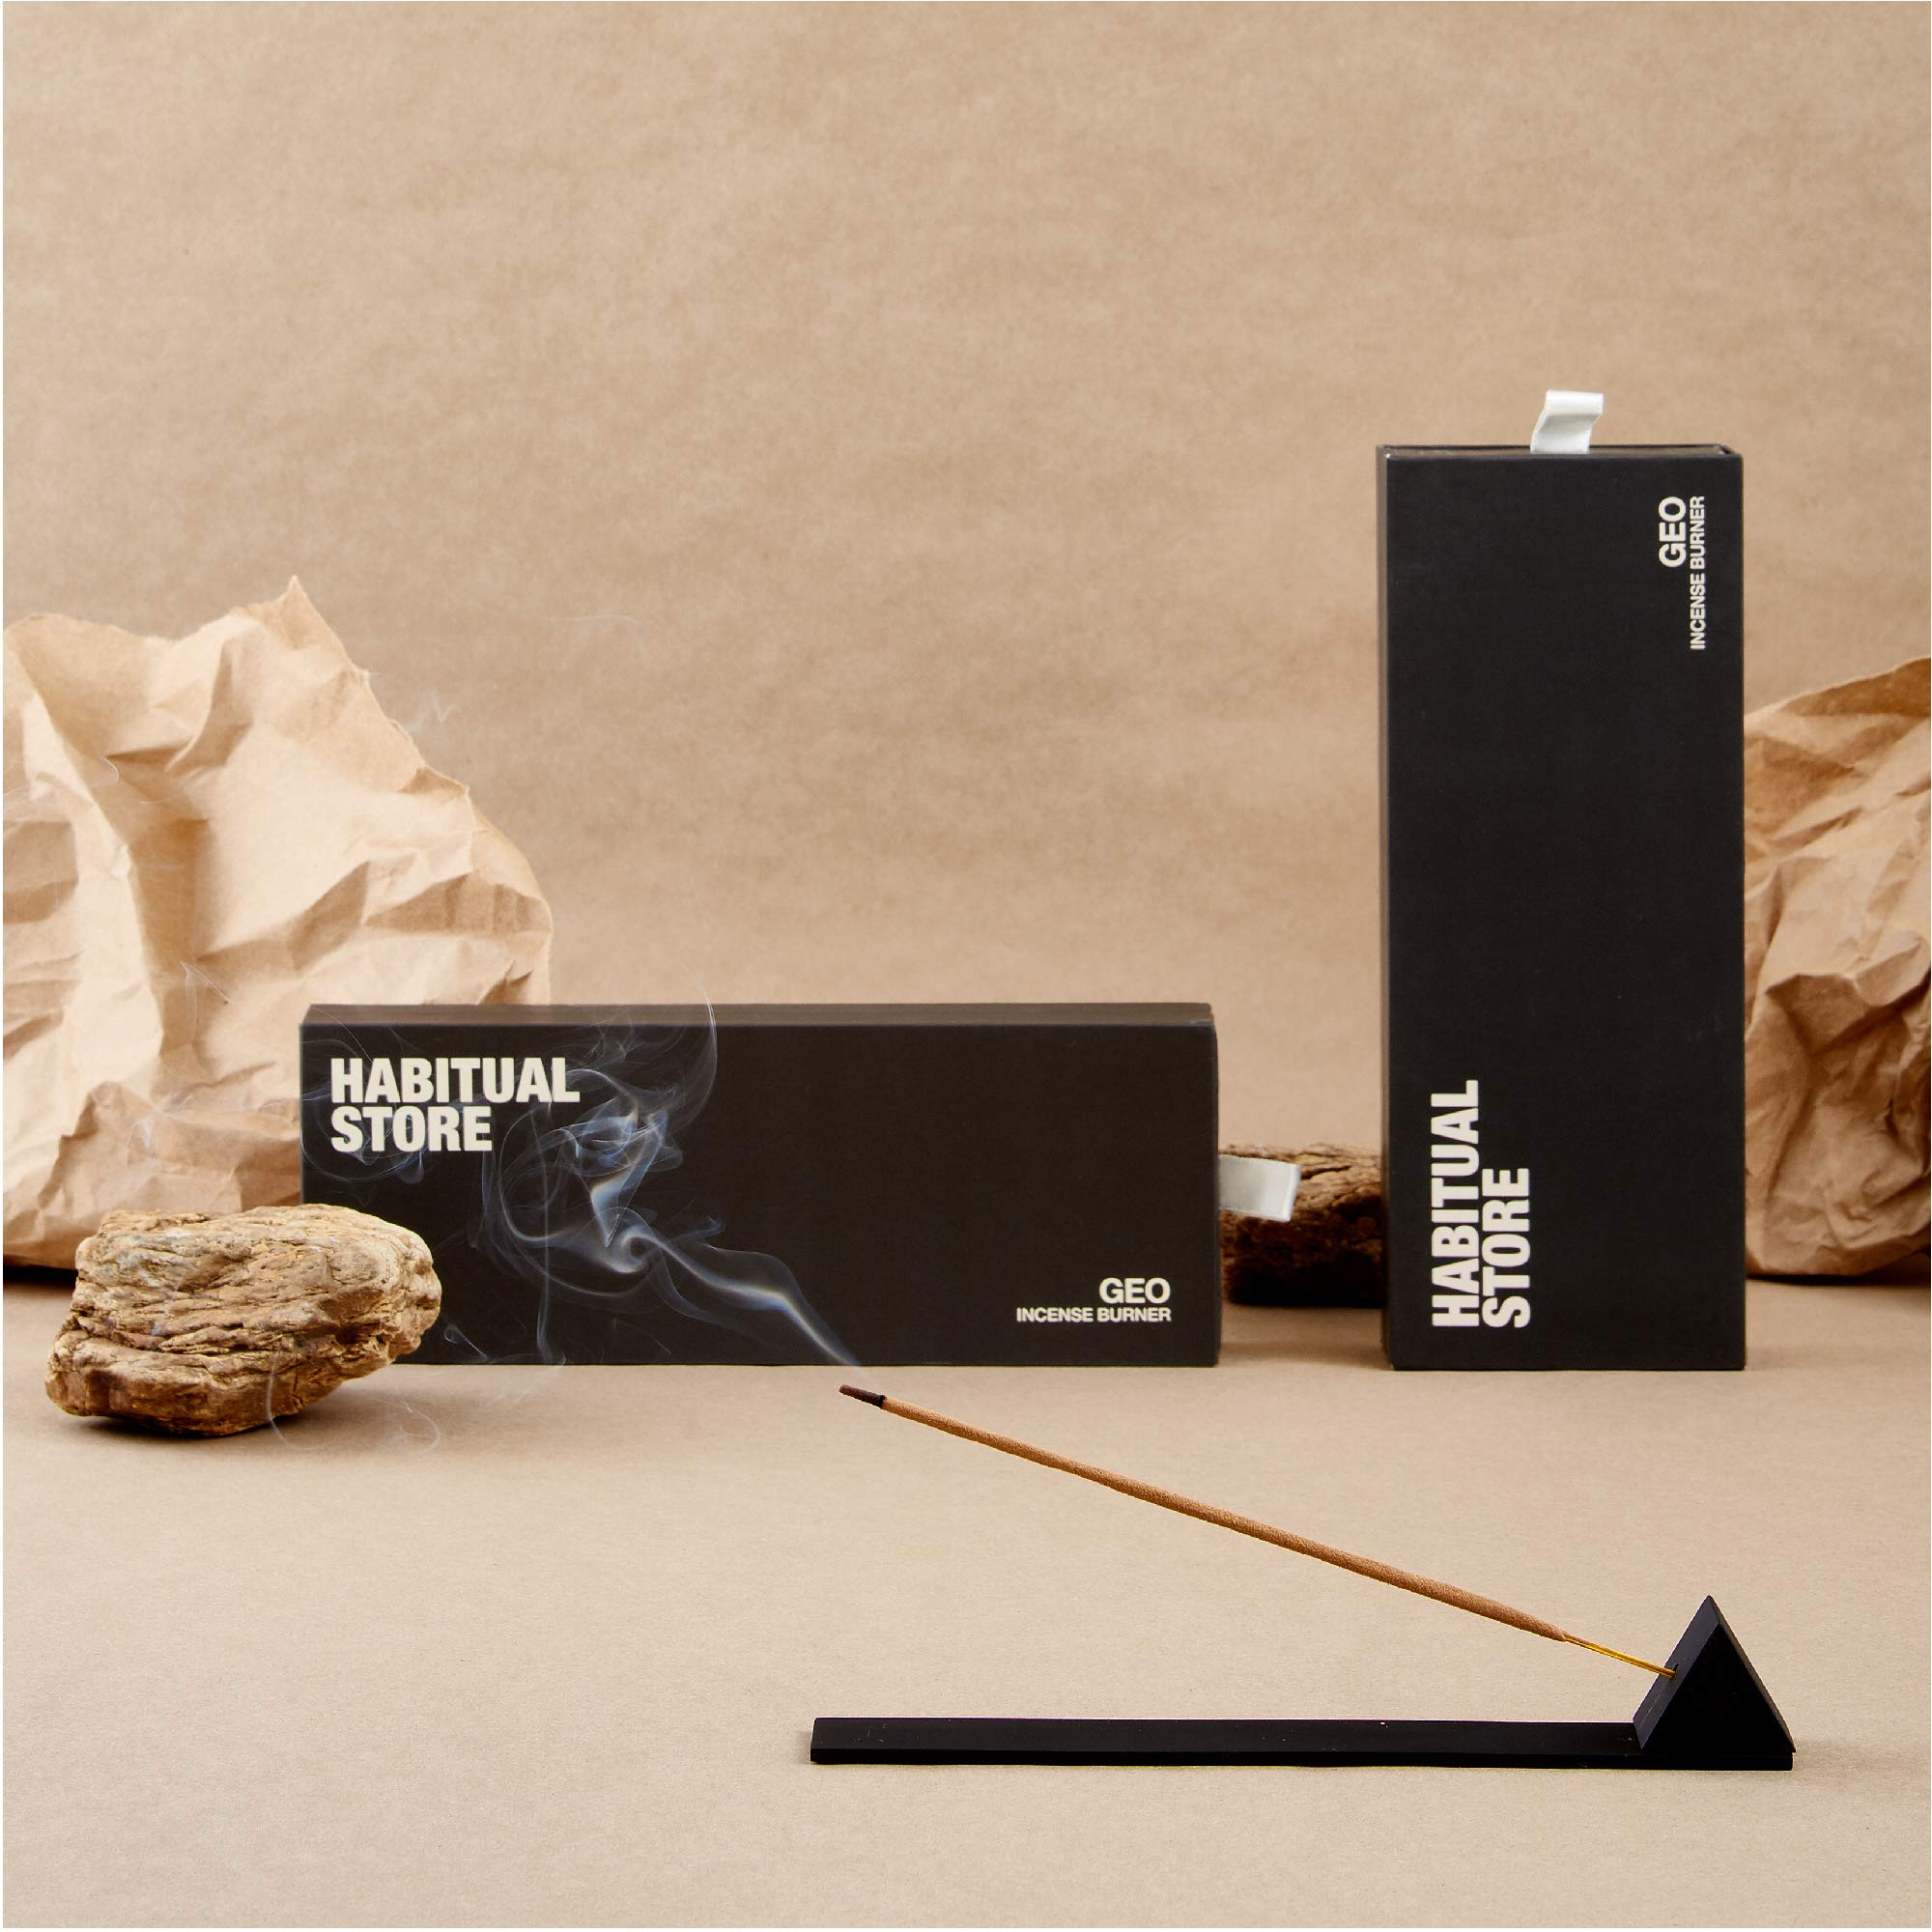 HABITUAL STORE Incense Burner Holder and Tray, Modern Prism Design, Matte Black - Metal Incense Burning Set with Ash Catcher for Sticks - Stylish Meditation and Yoga Accessories, Gift Set for Women by HABITUAL STORE (Image #6)